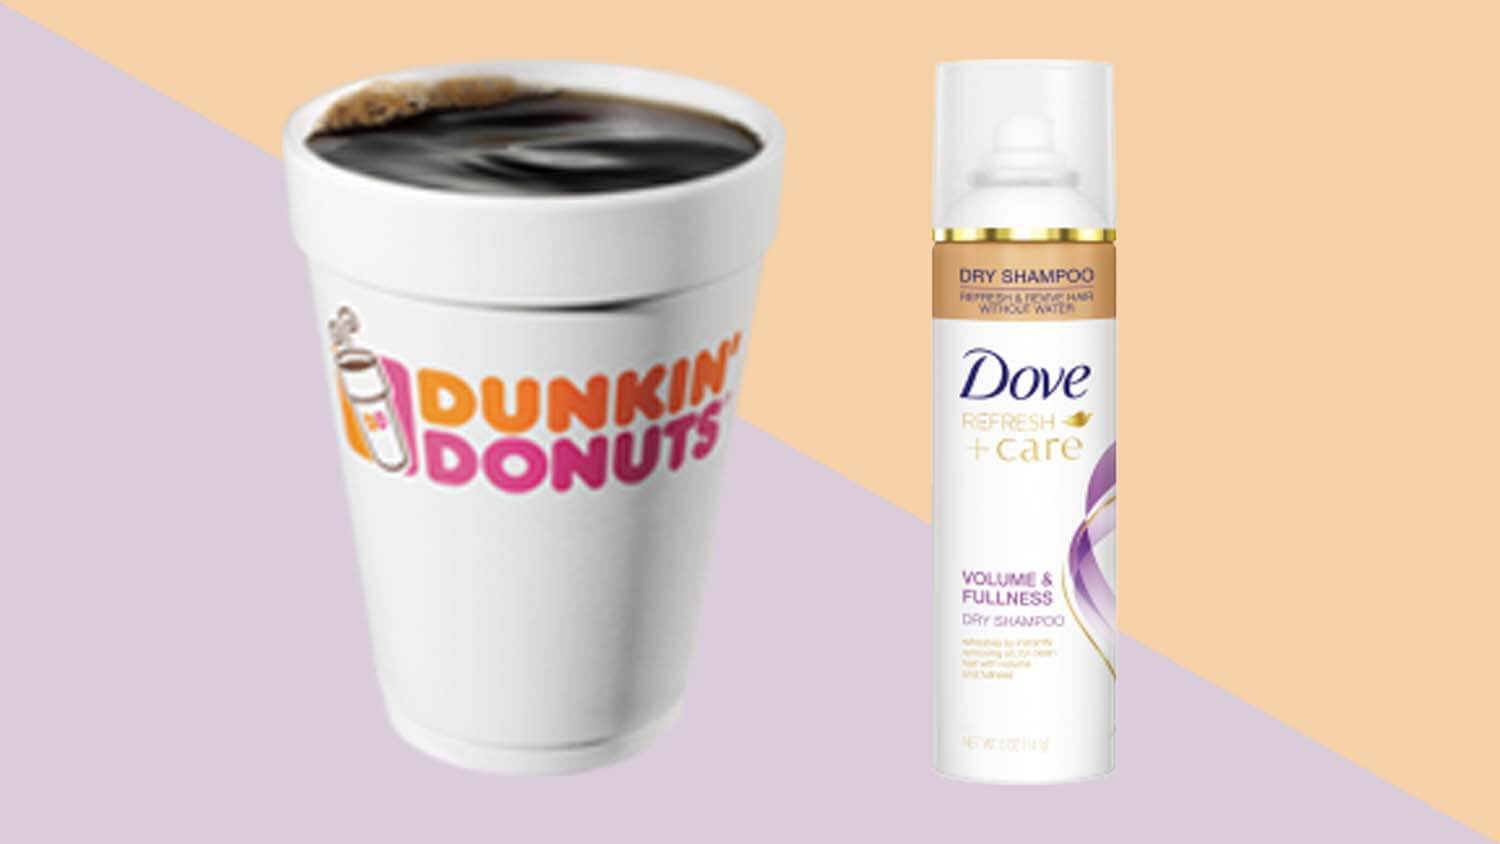 Beauty Brand Dove and Dunkin' Donuts Are Giving Away Free Cruelty-Free Vegan Dry Shampoo and Coffee